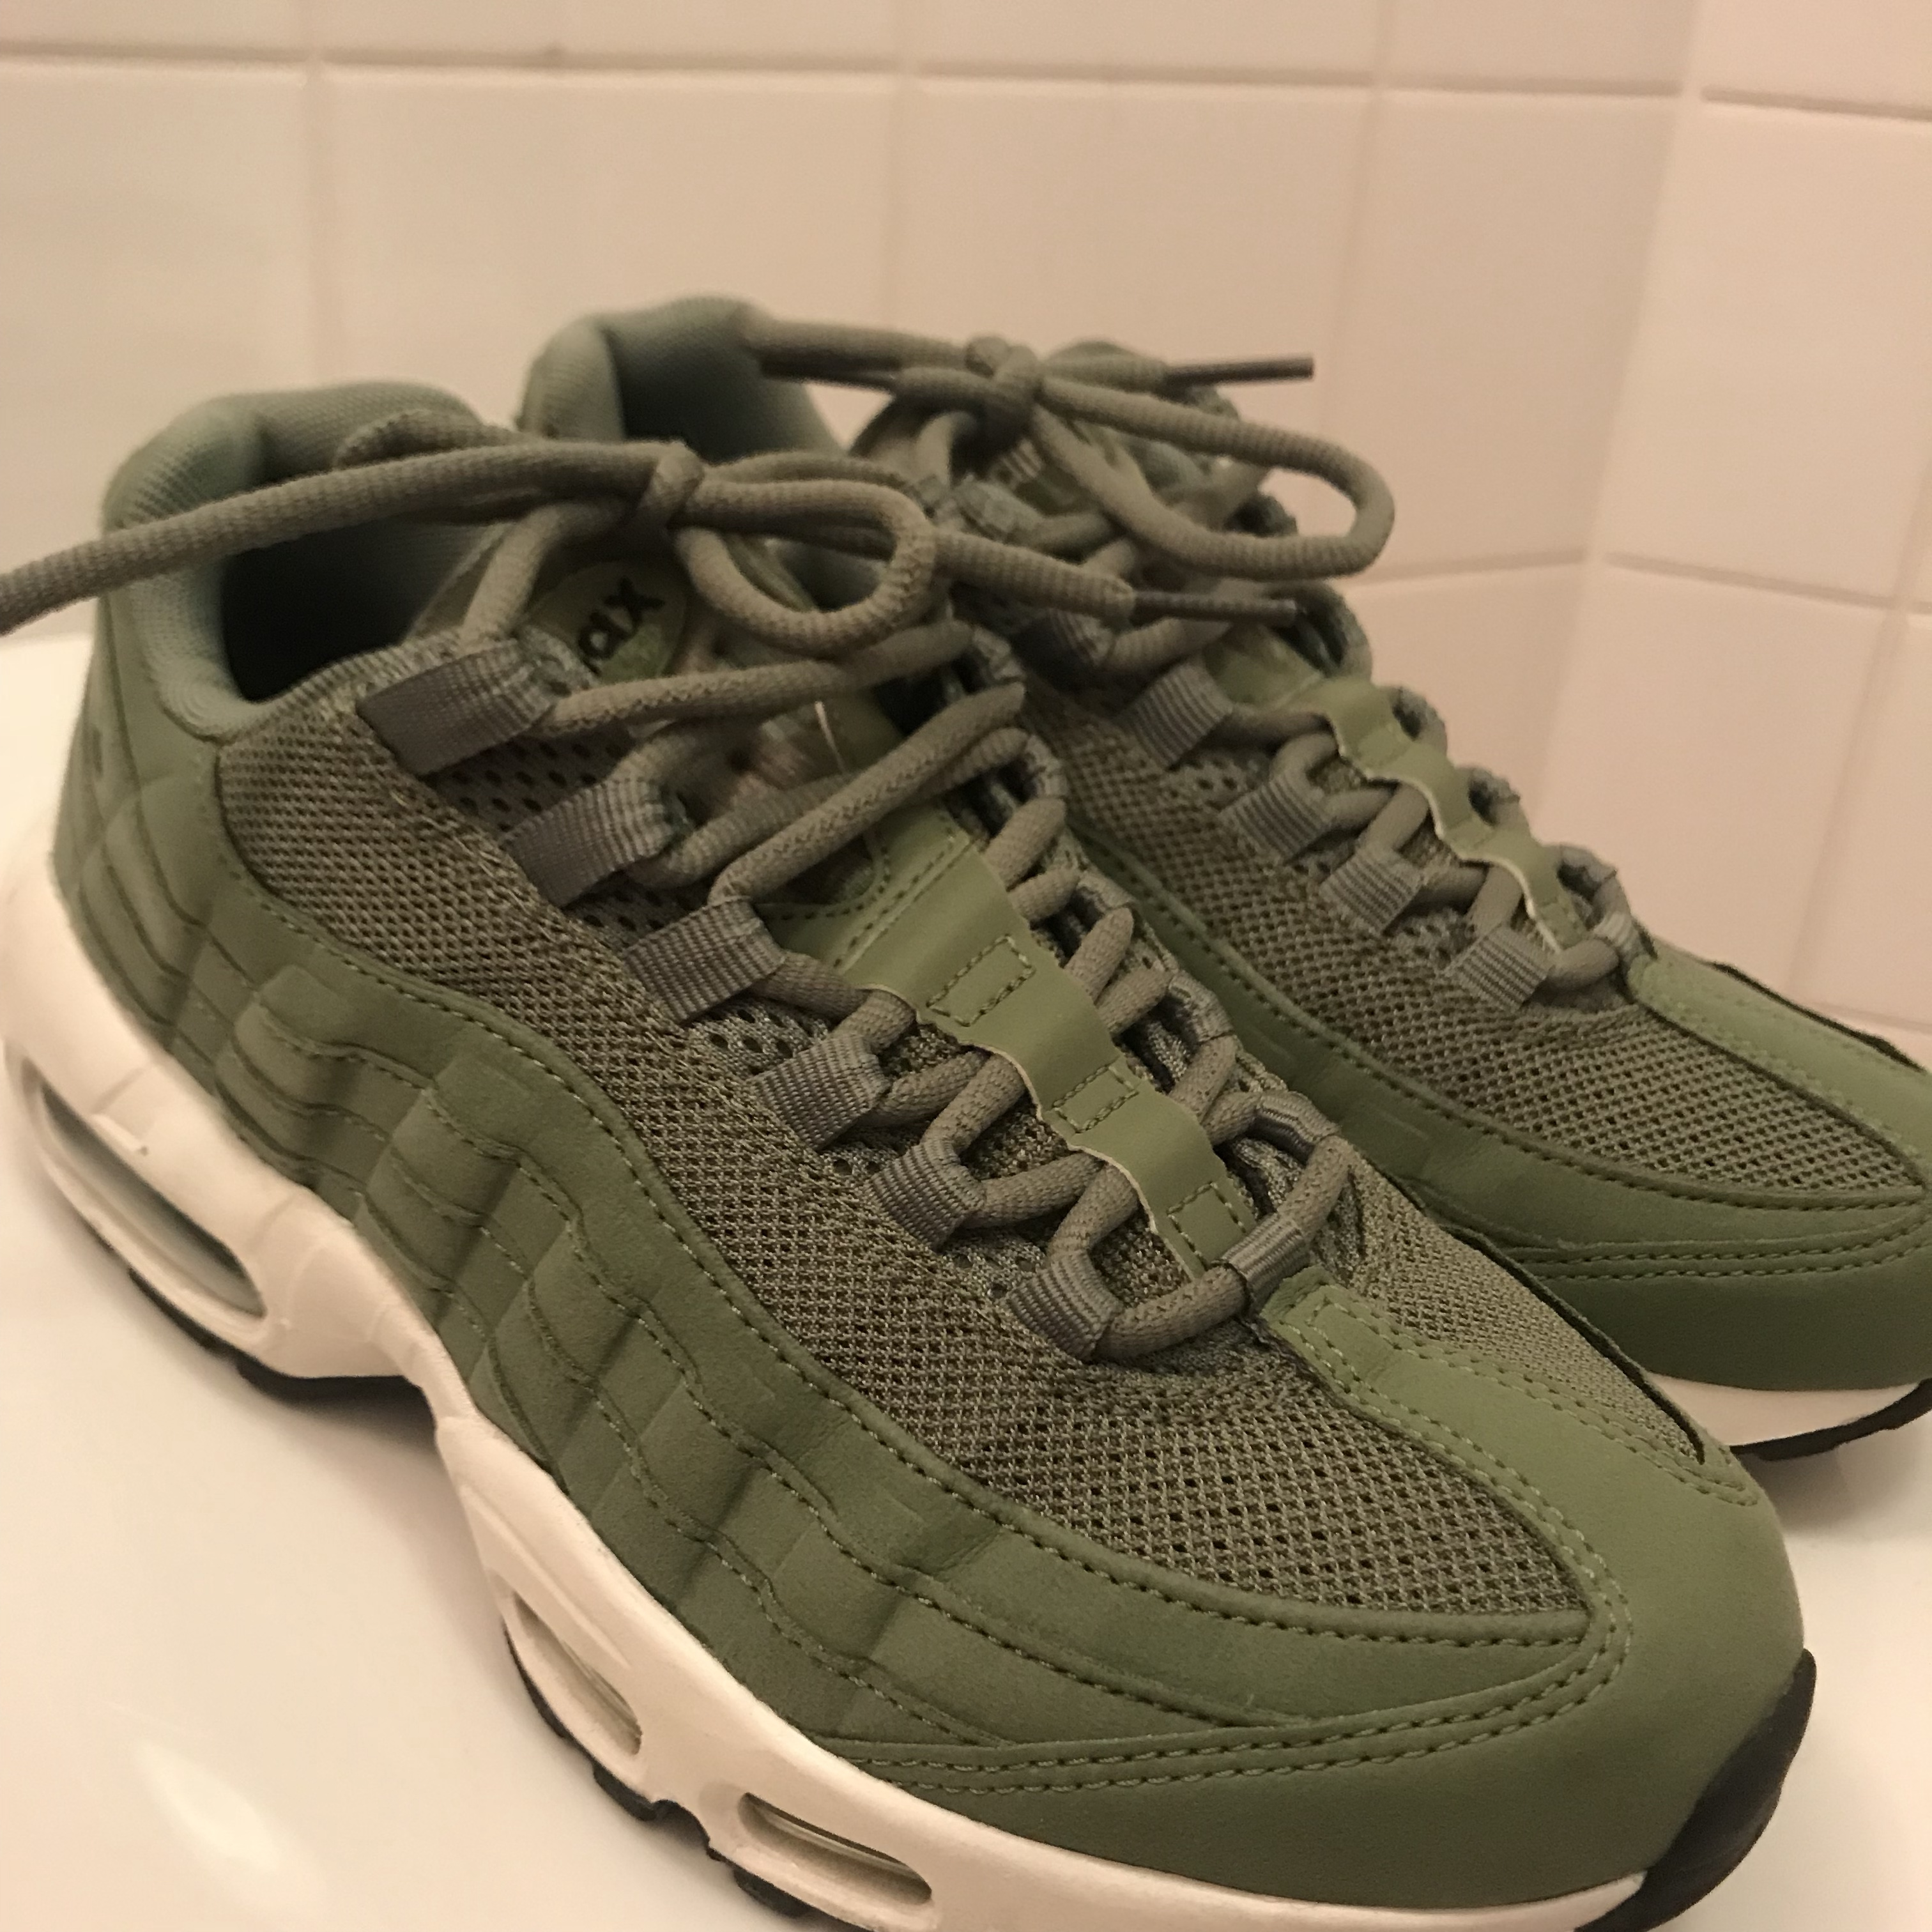 quality design ca559 90fc8 Khaki Green Air Max 95s. Had for about a year but... - Depop